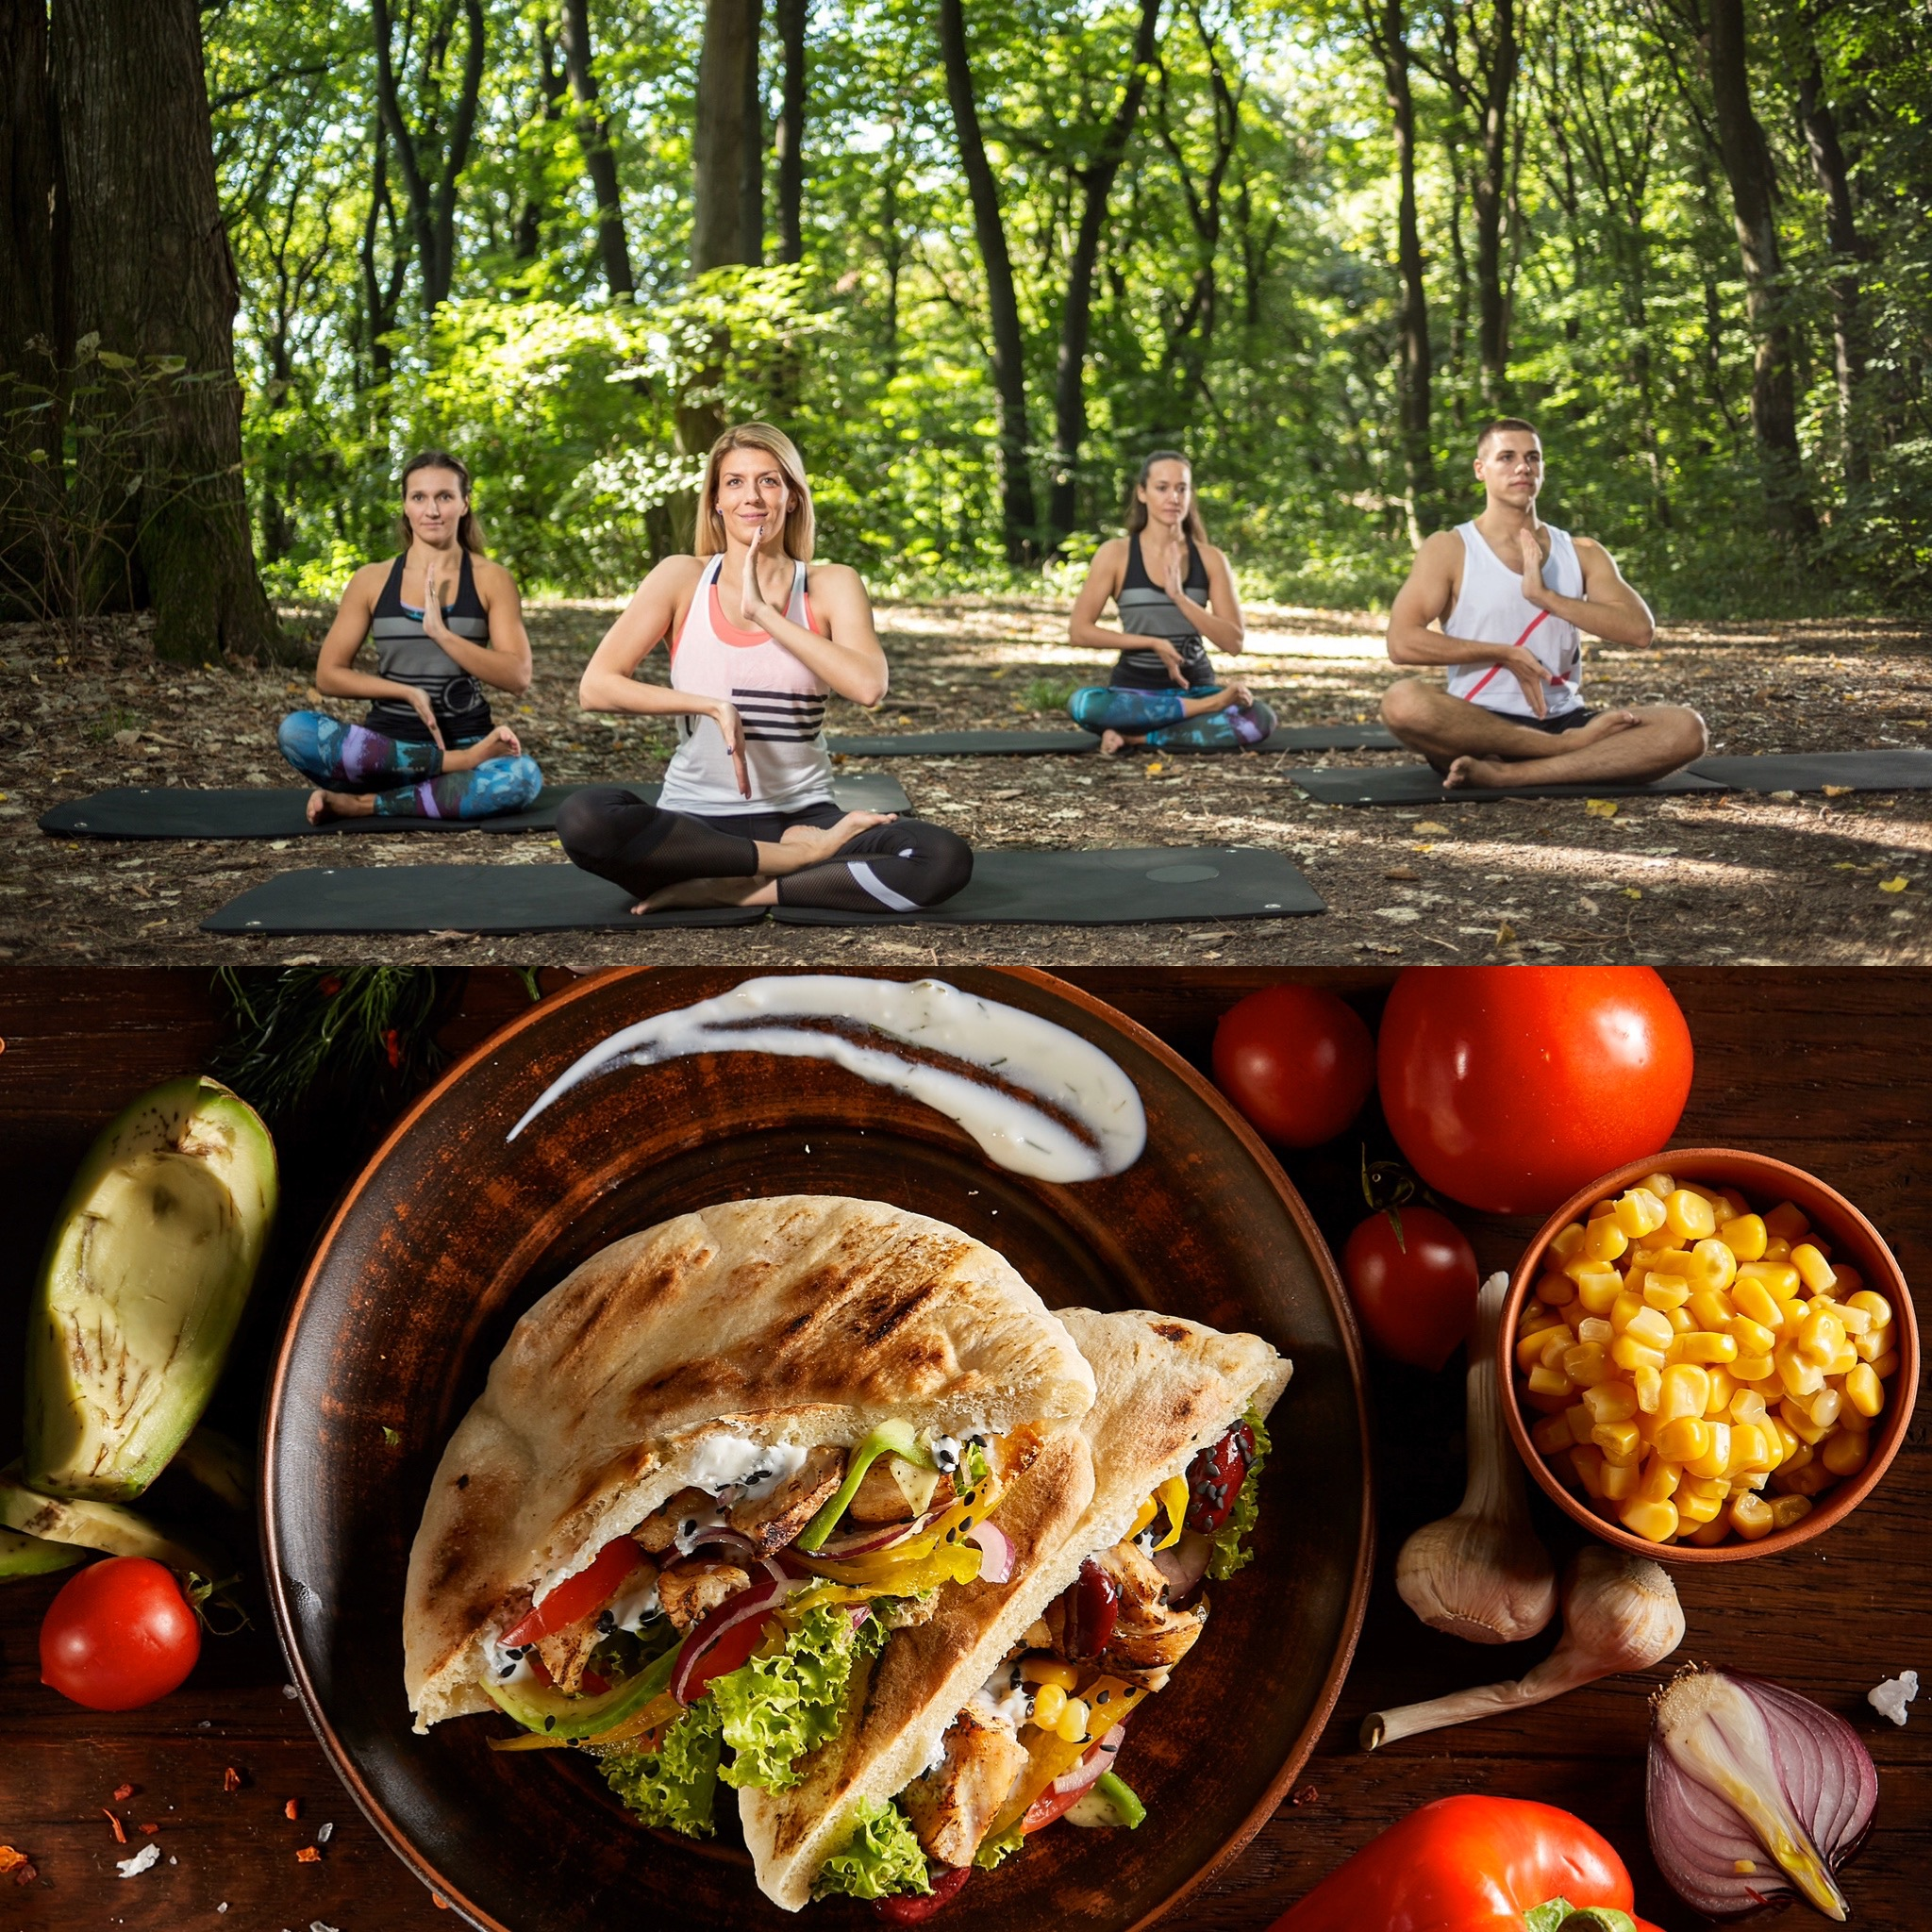 Yoga & Lunch With Becca Mclachlan - Price £22